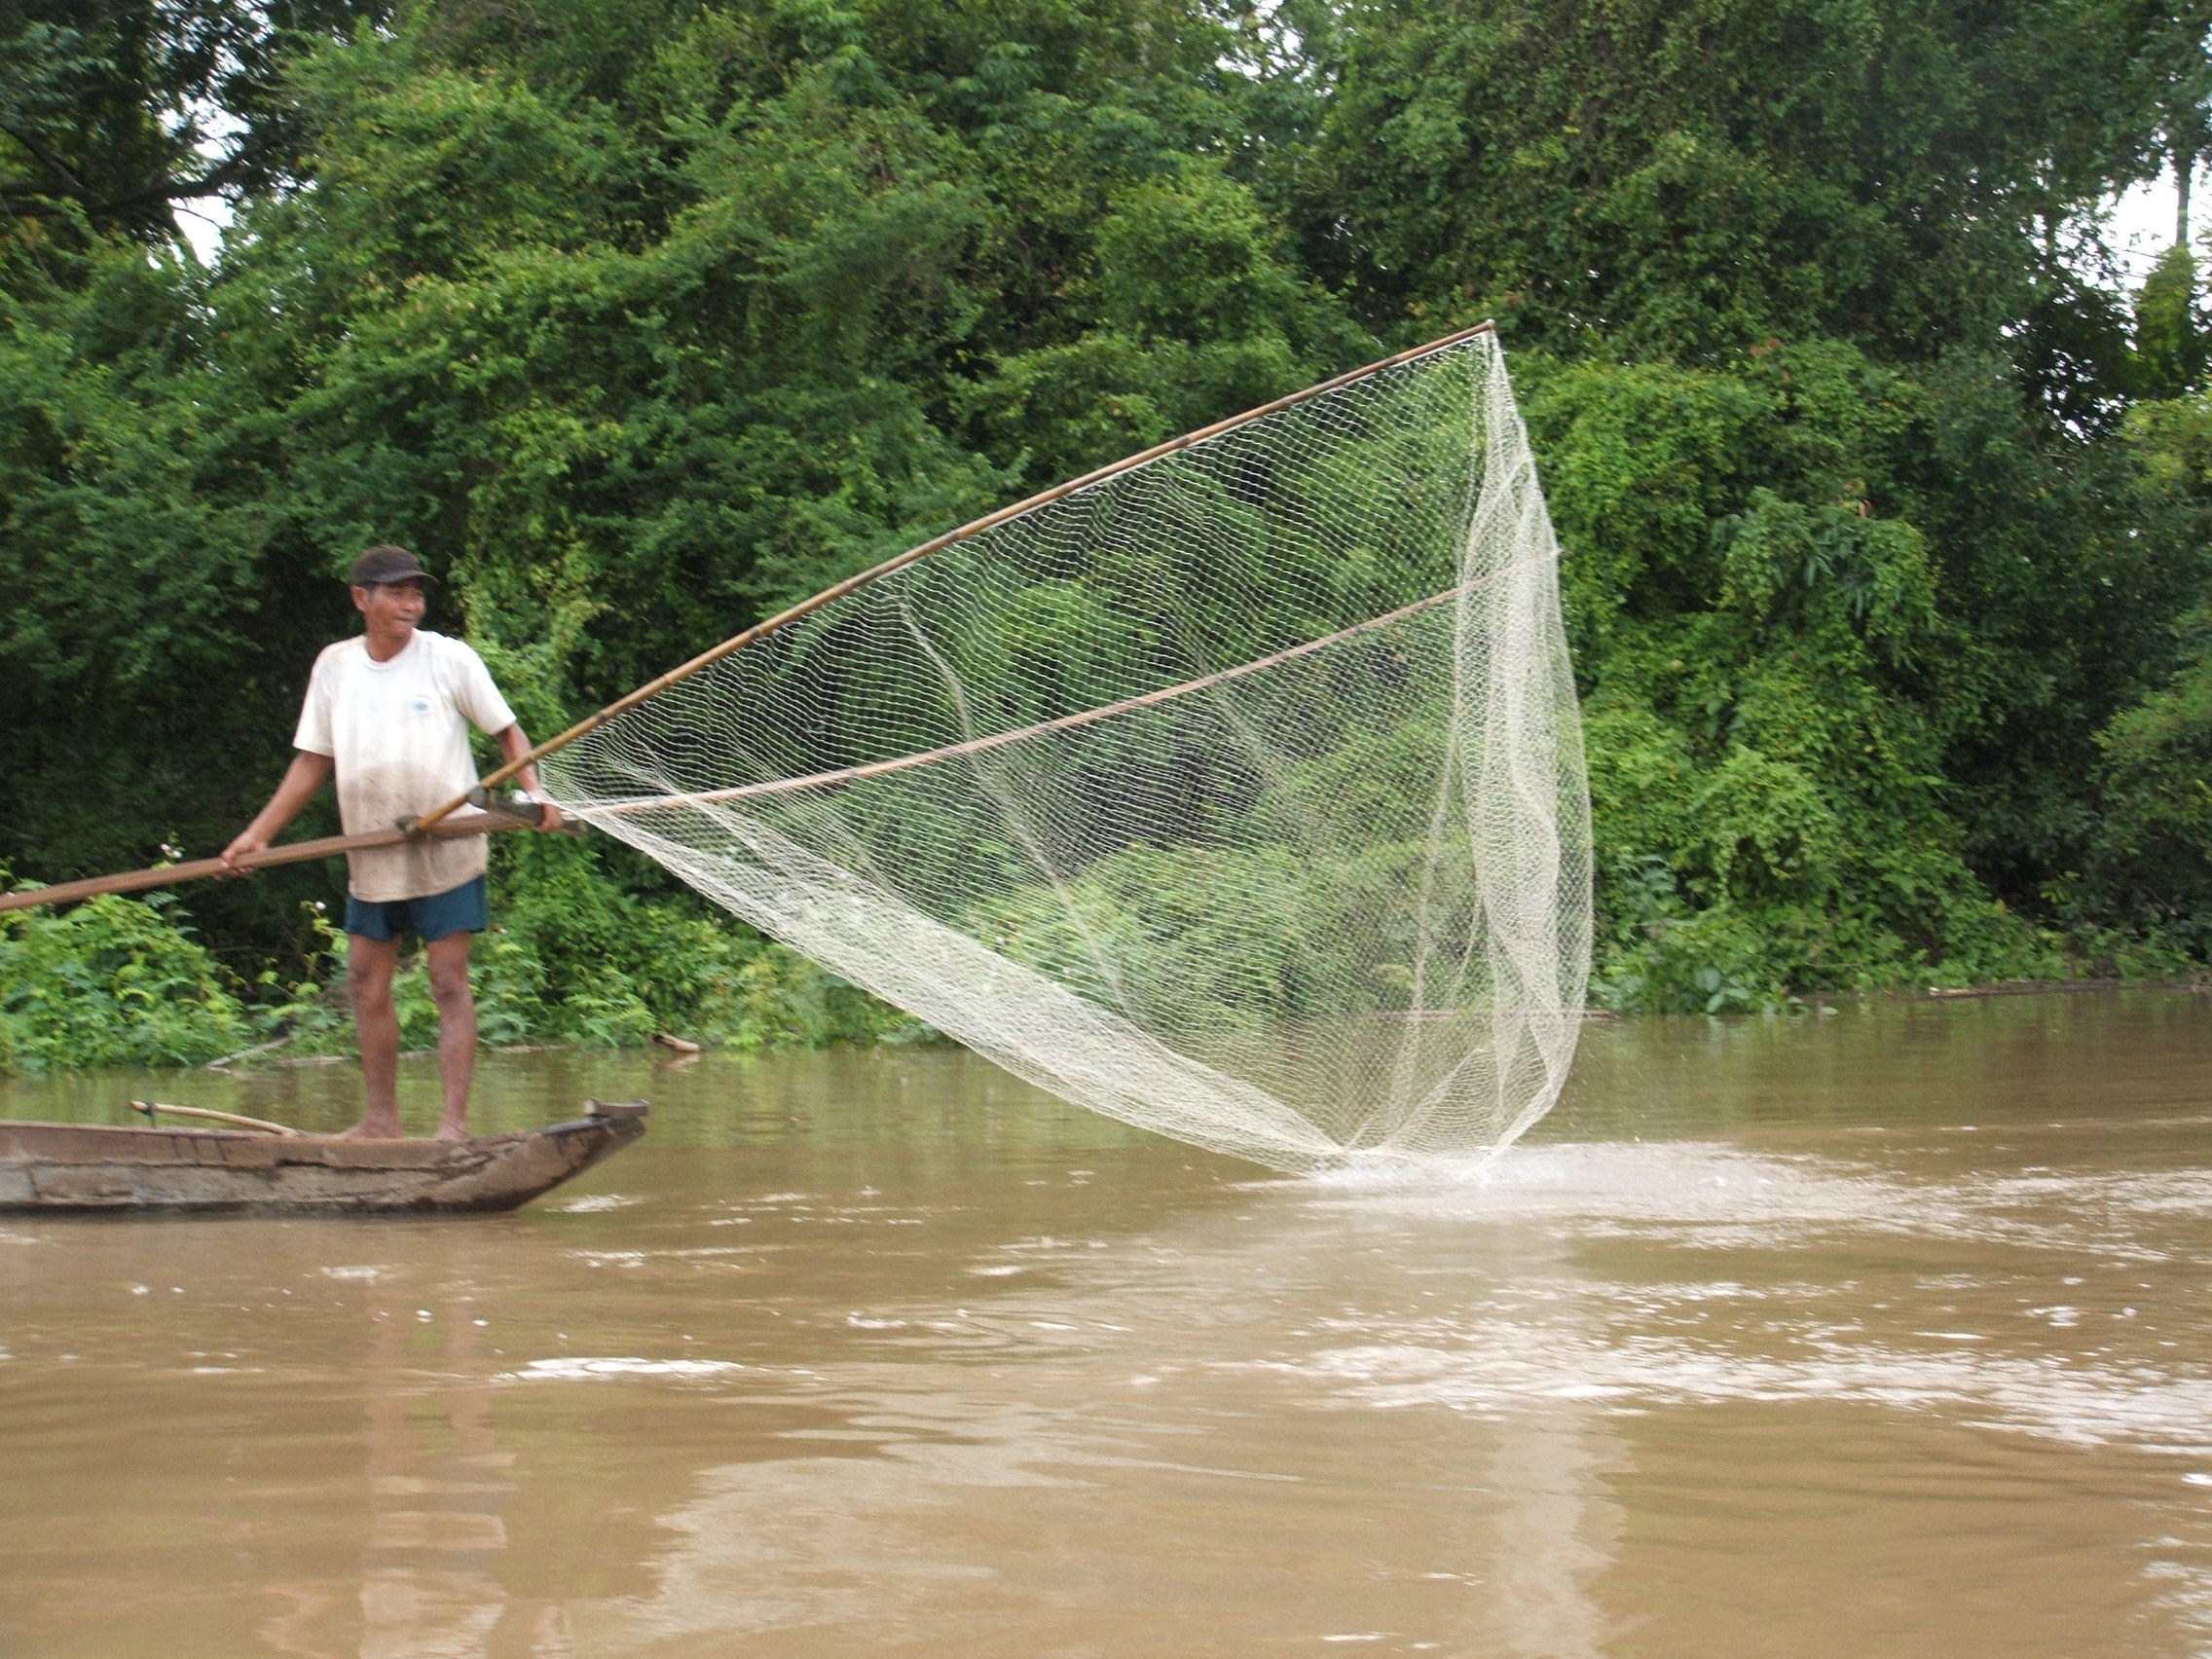 A fisherman on the Mekong River.